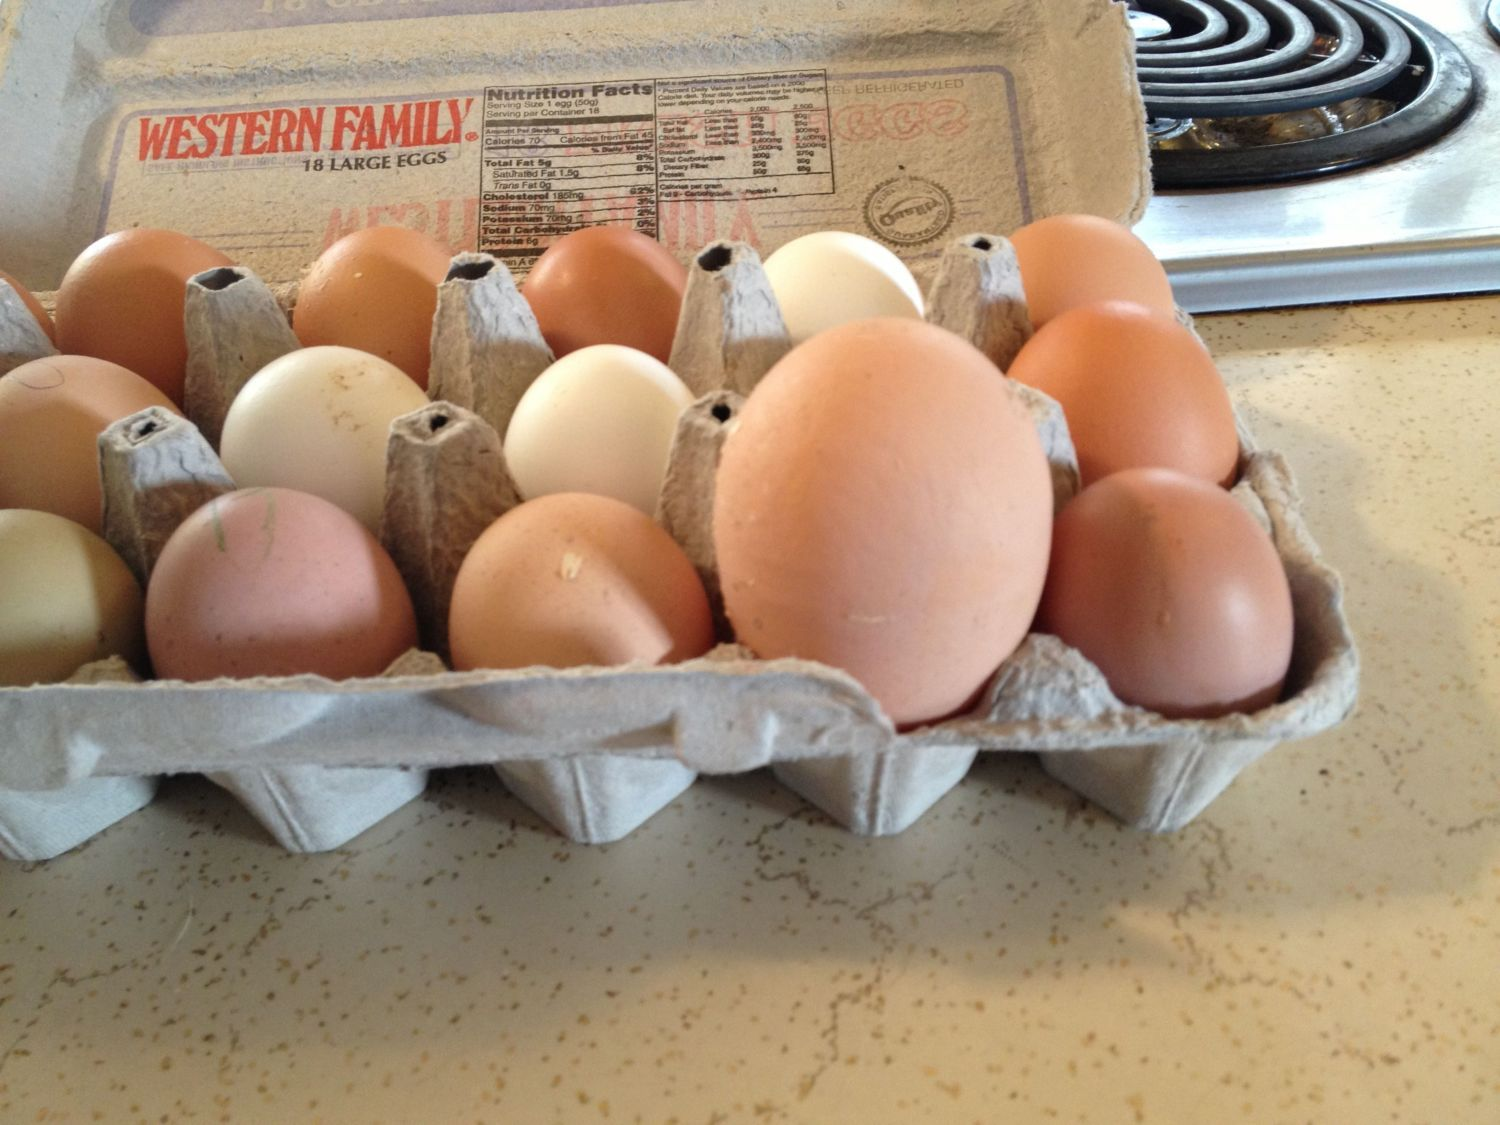 Souperchicken's photos in Abnormally large eggs